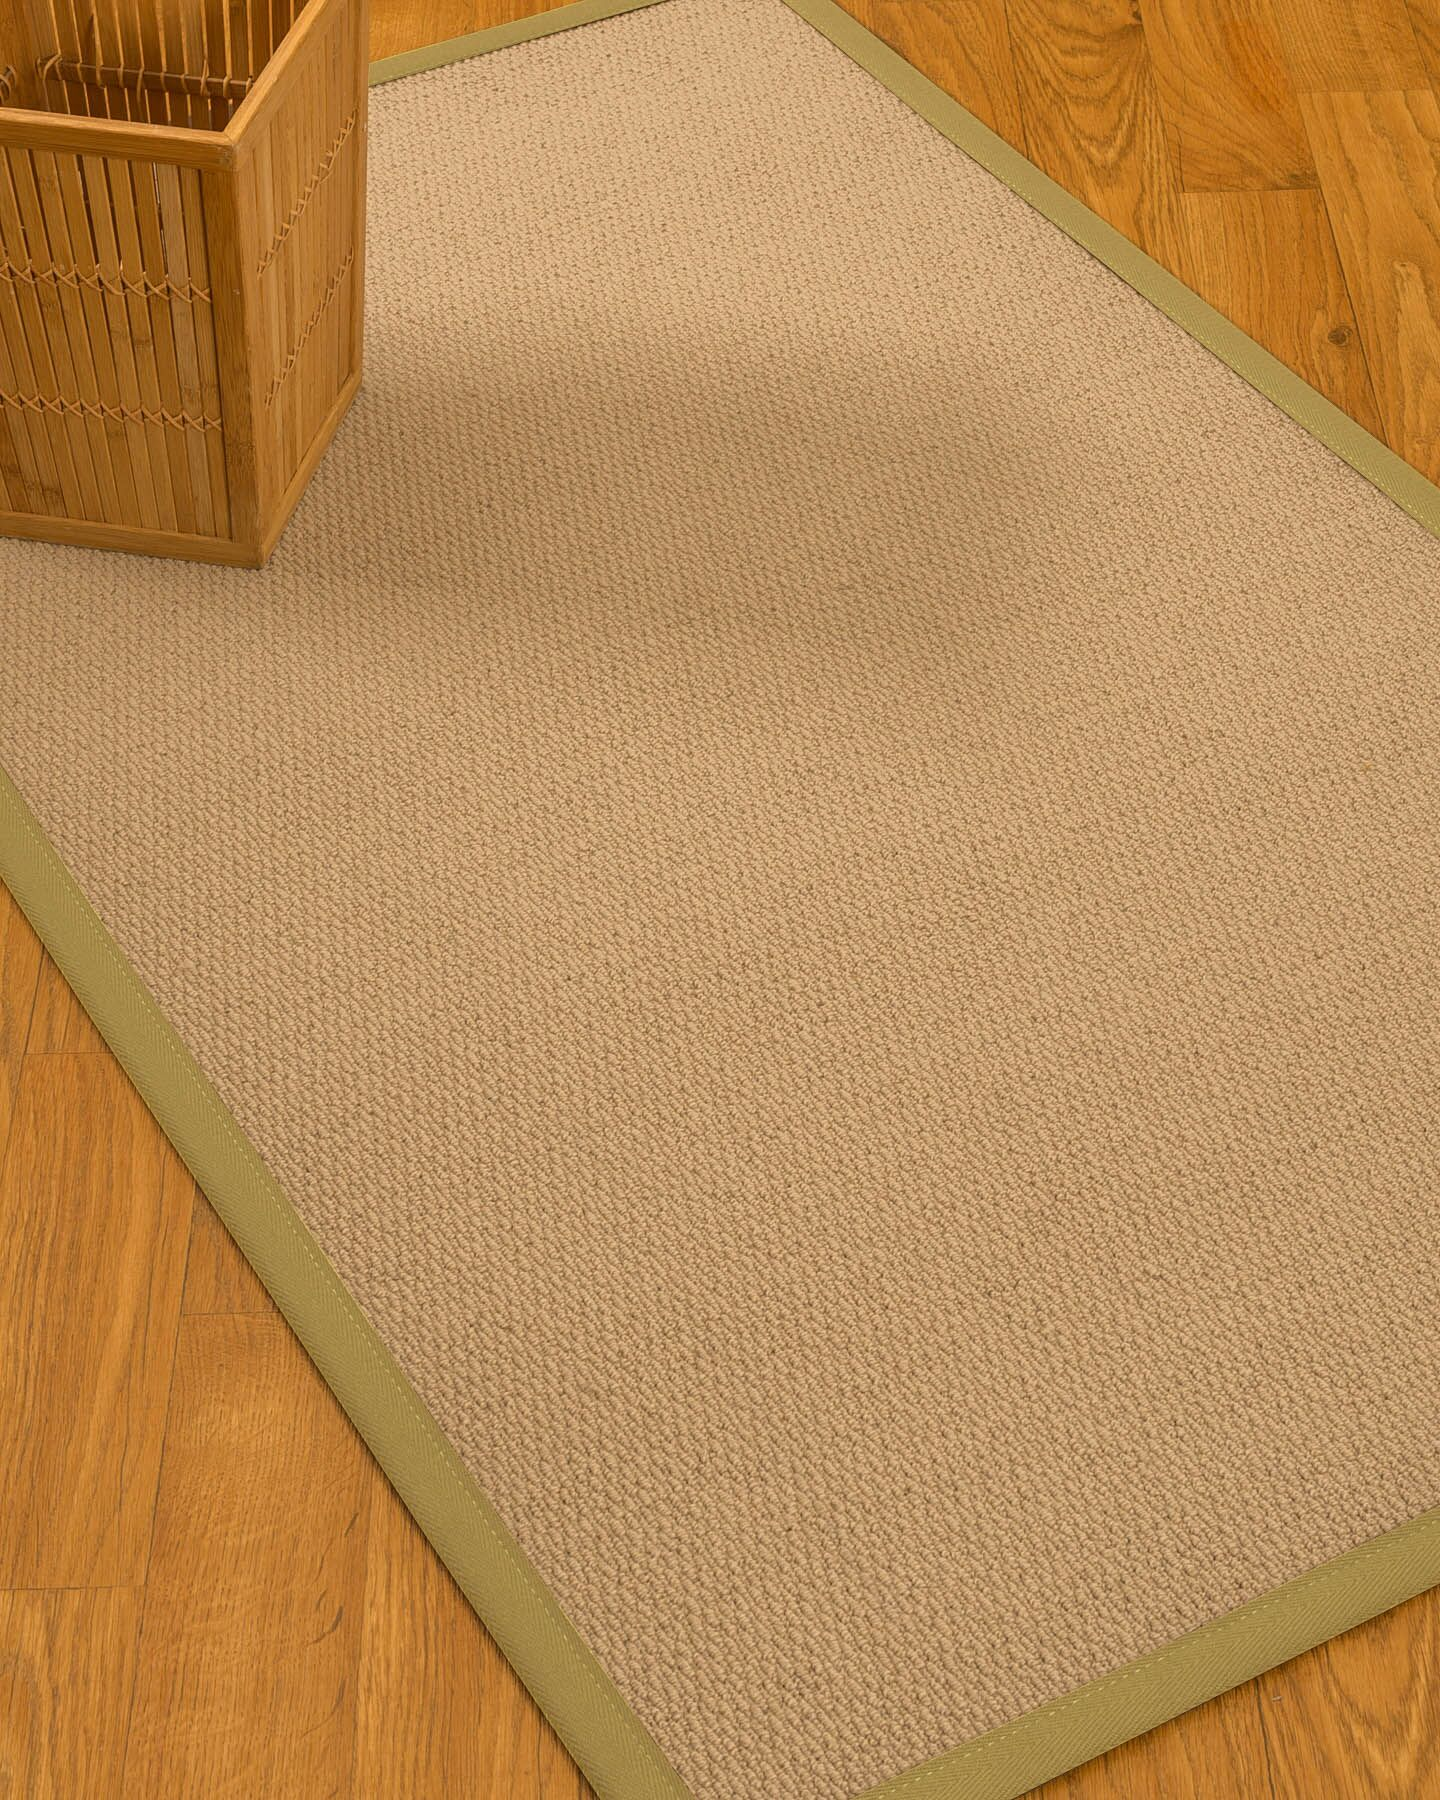 Chea Border Hand-Woven Wool Beige/Khaki Area Rug Rug Size: Rectangle 4' x 6', Rug Pad Included: Yes